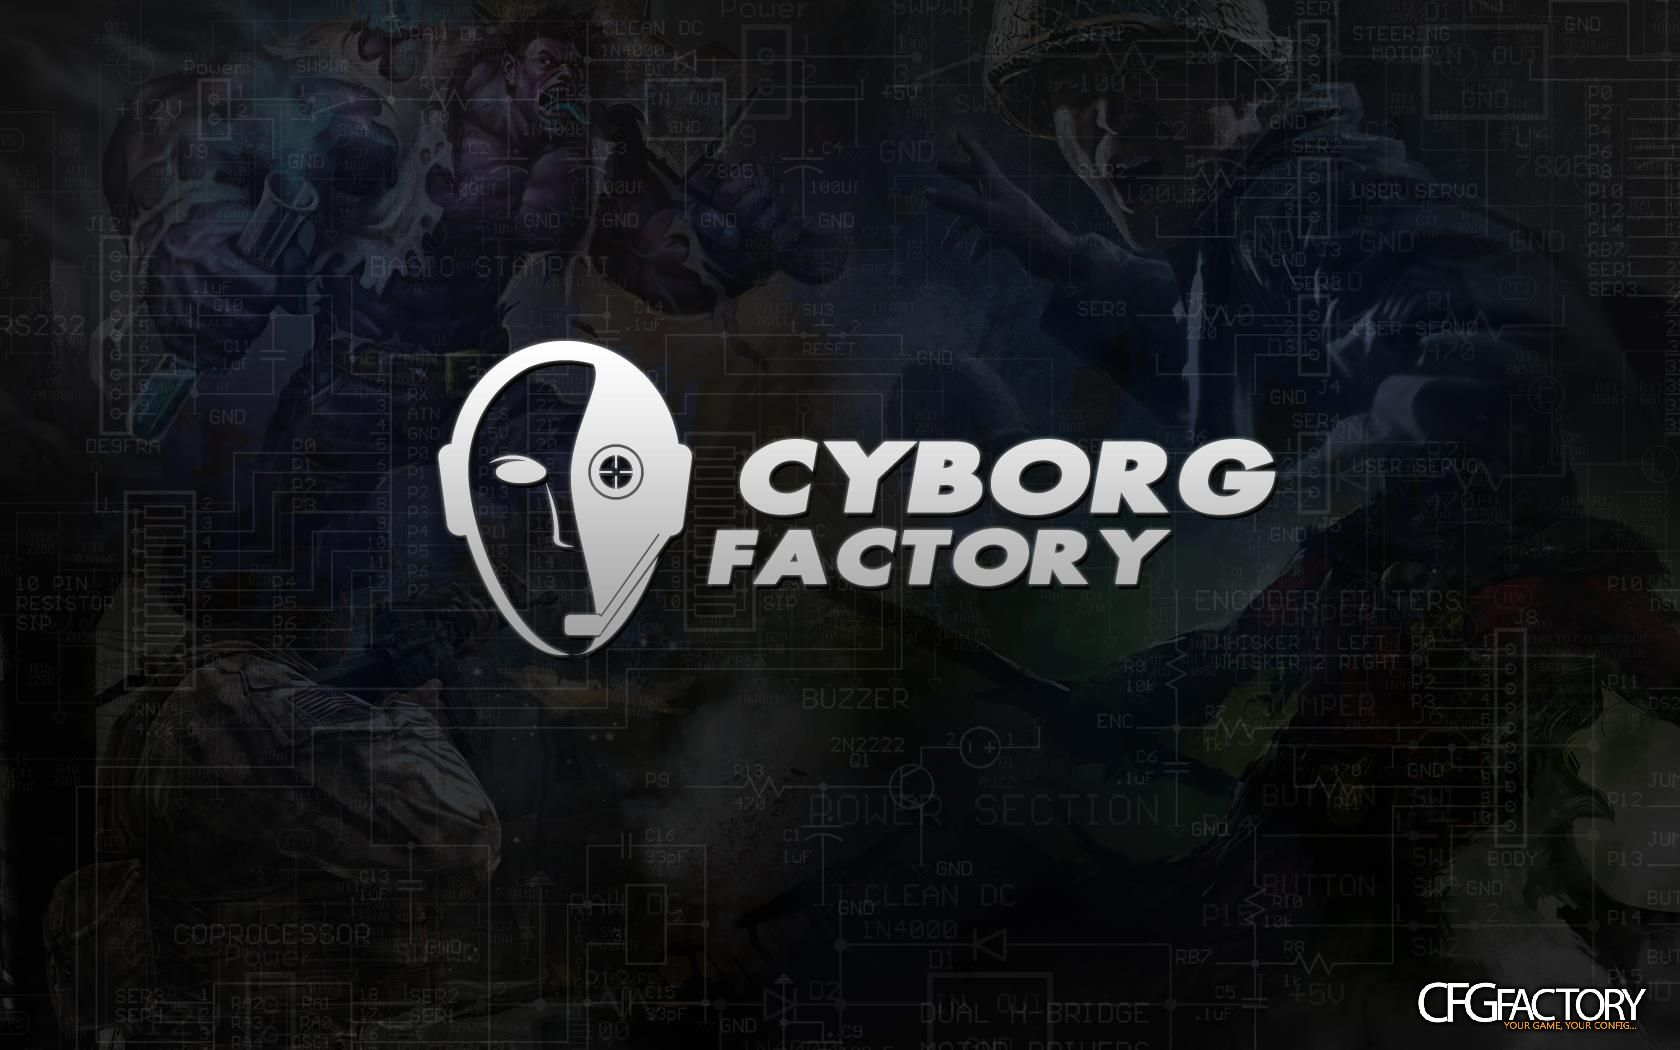 cod4, configs, cyborg factory cfg pack, n/a